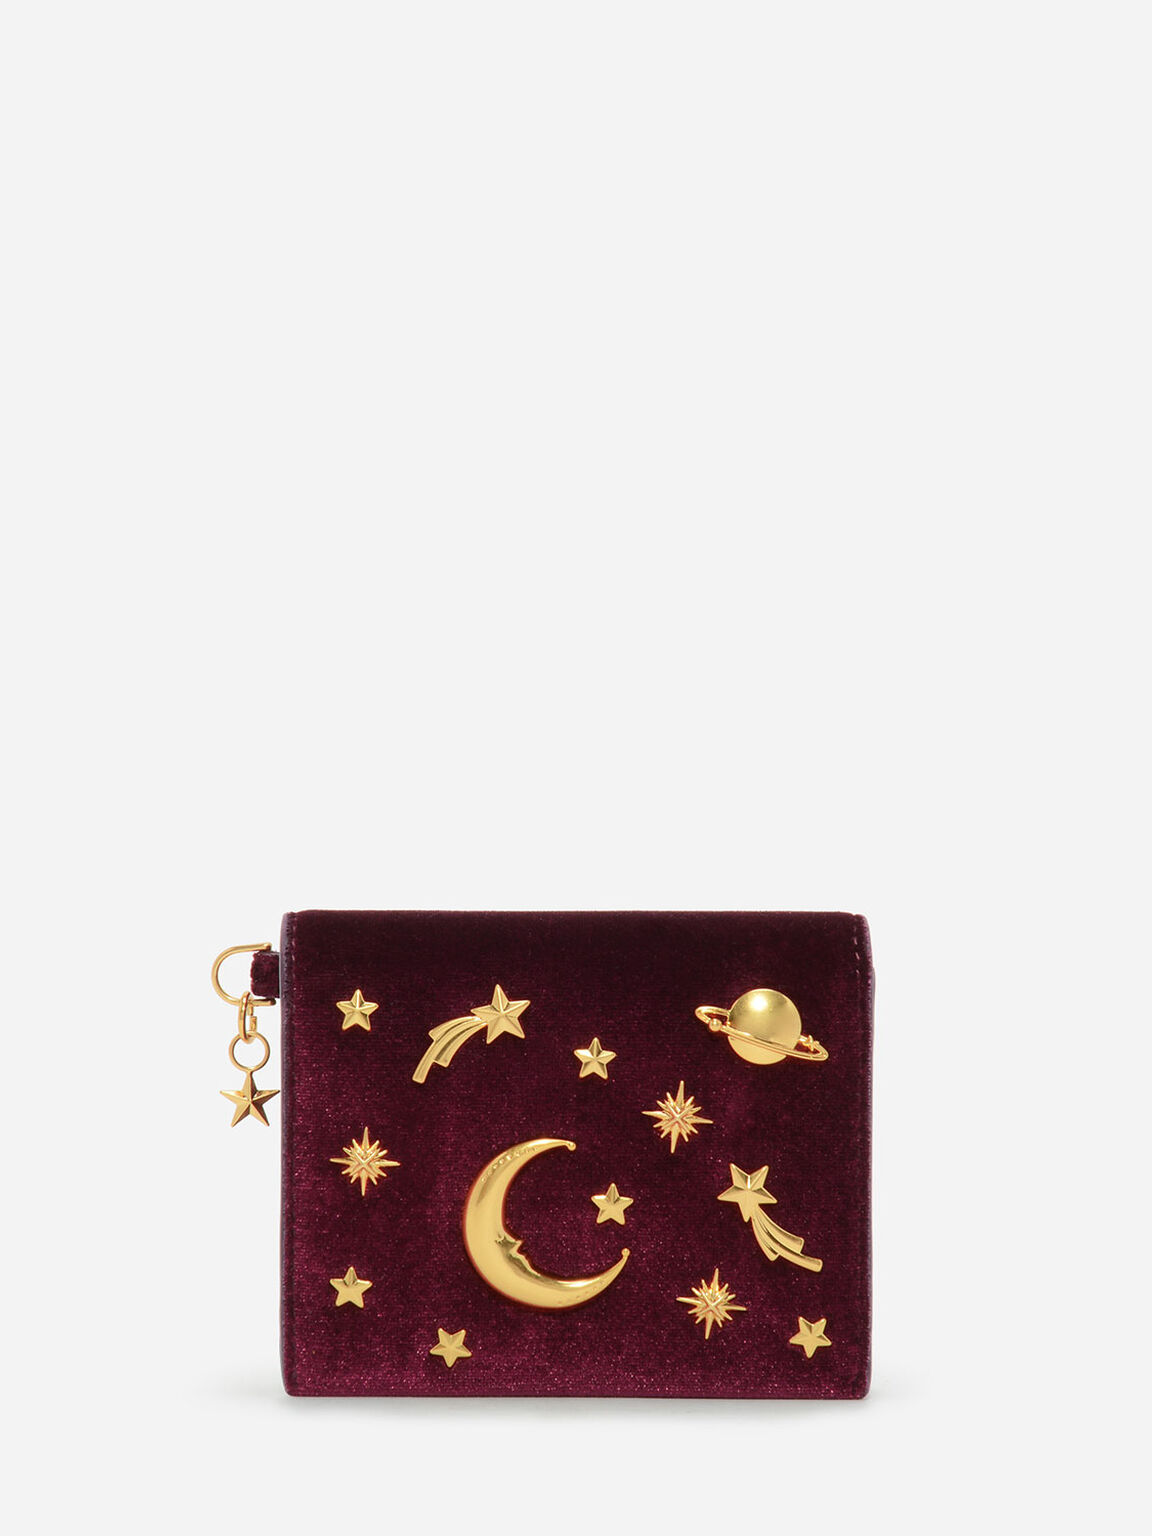 Galaxy Embellished Cardholder, Burgundy, hi-res